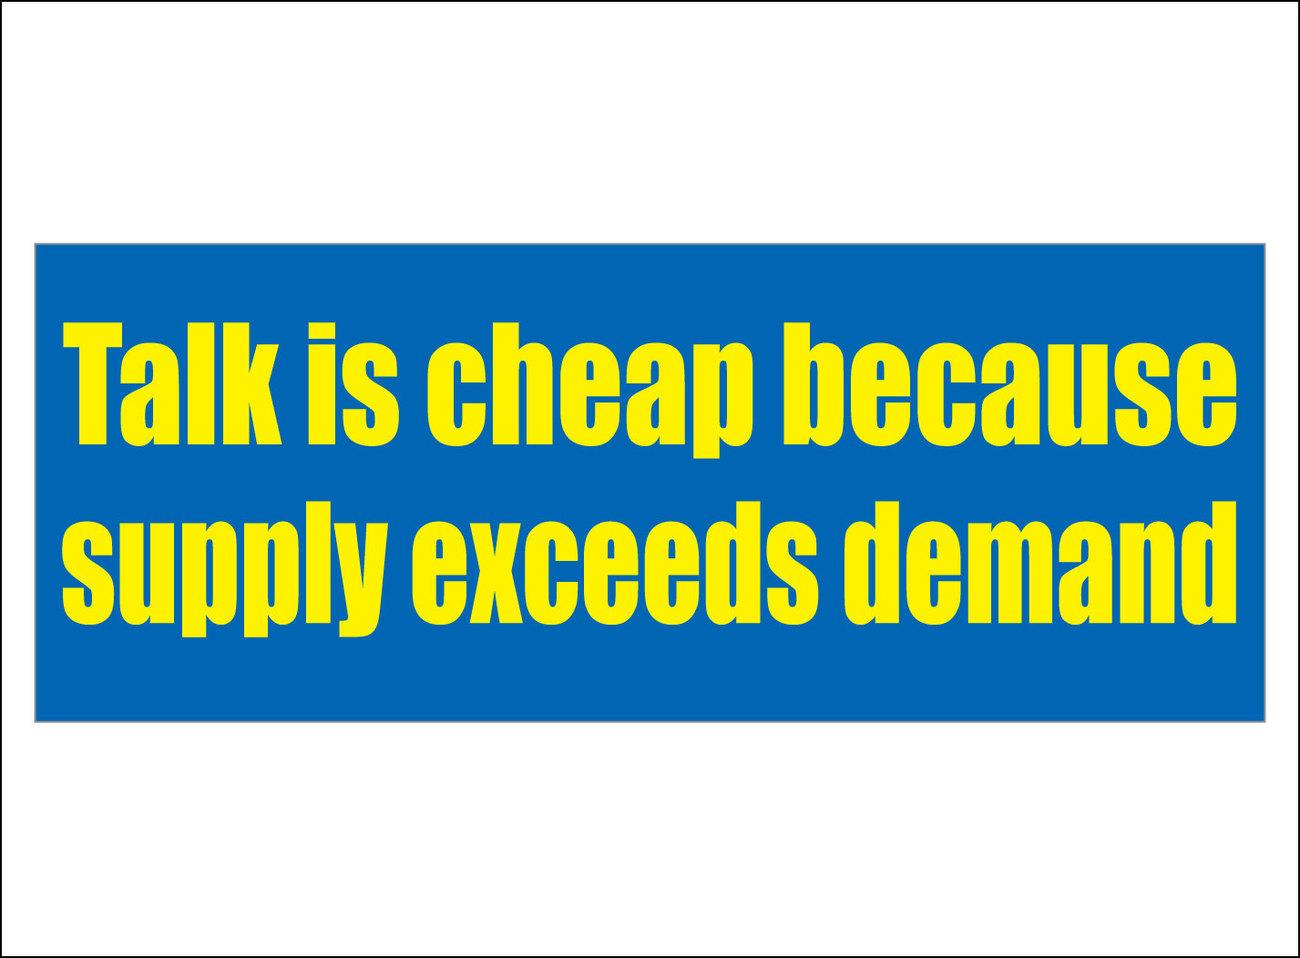 Talk is cheap because supply exceeds demand. - bumper sticker image 1